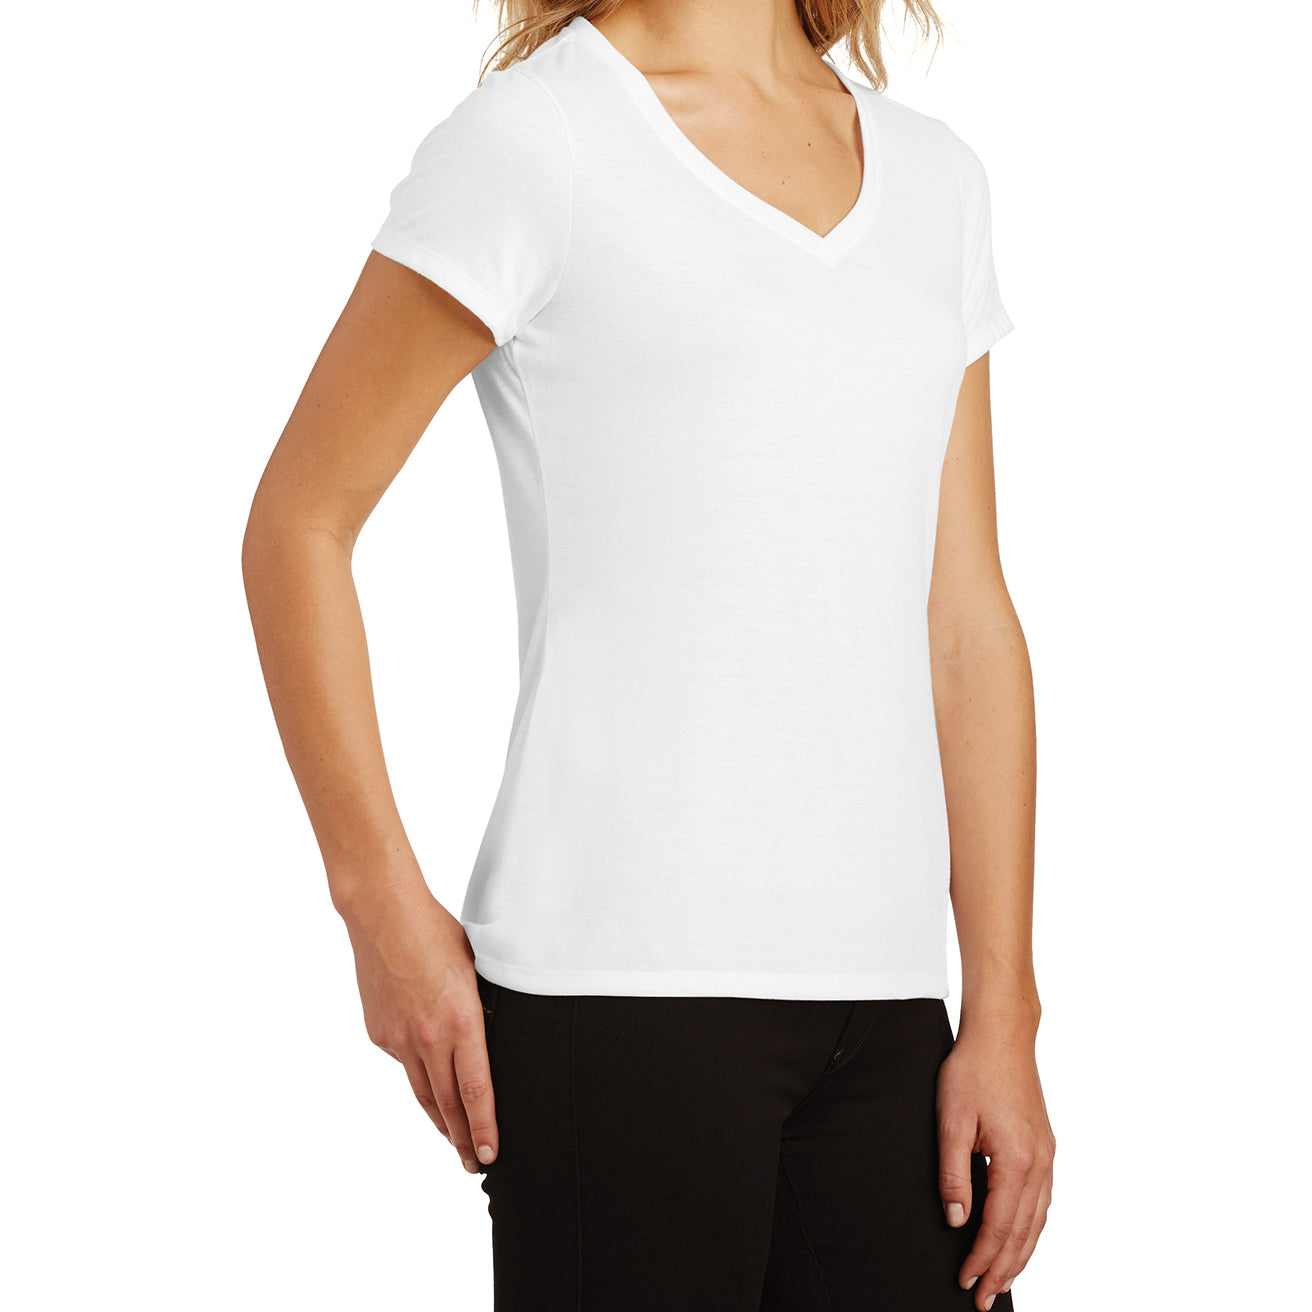 Women's Perfect Tri V-Neck Tee - White - Side